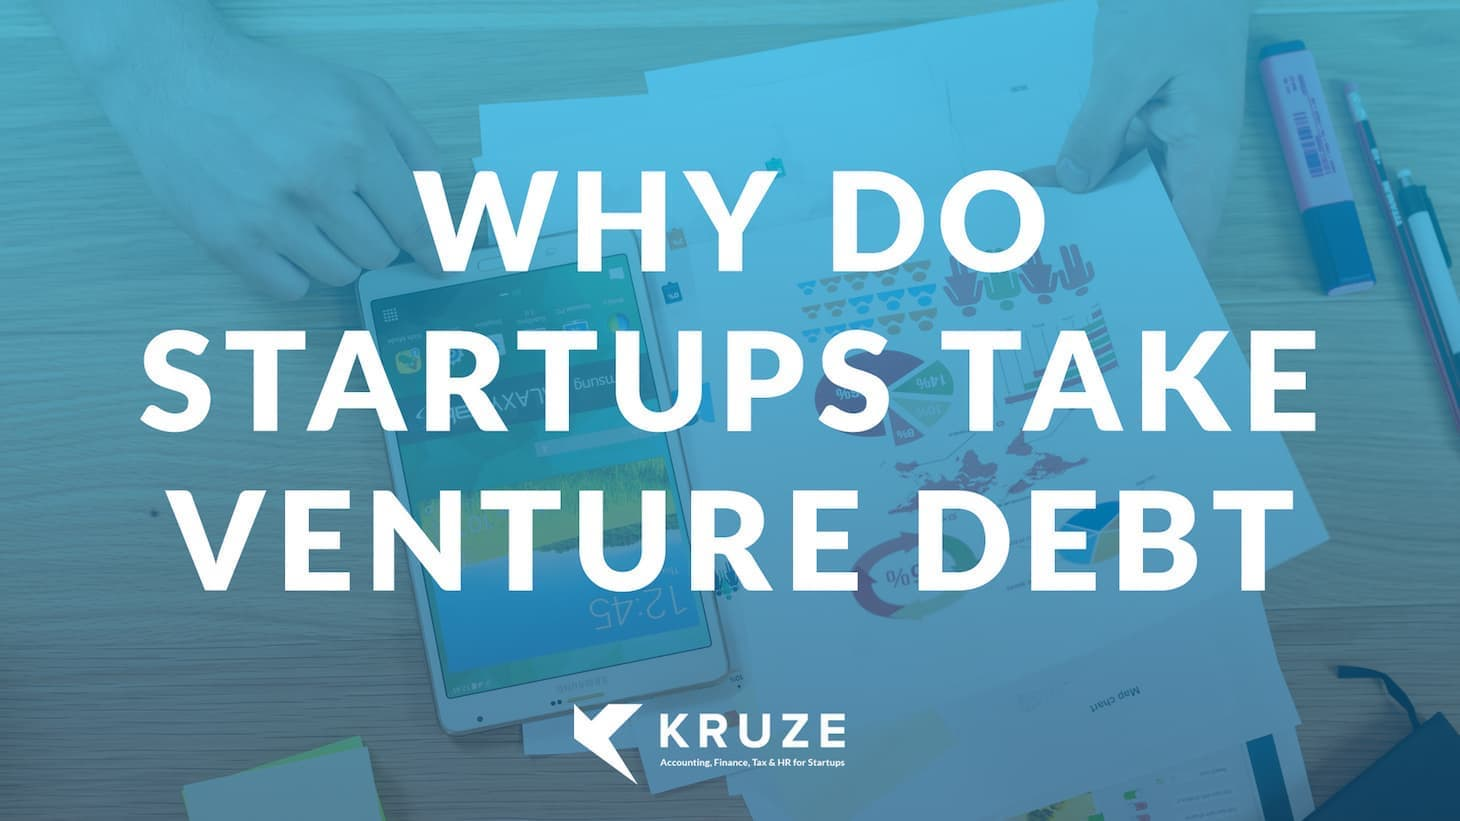 Why Do Startups Take Venture Debt?